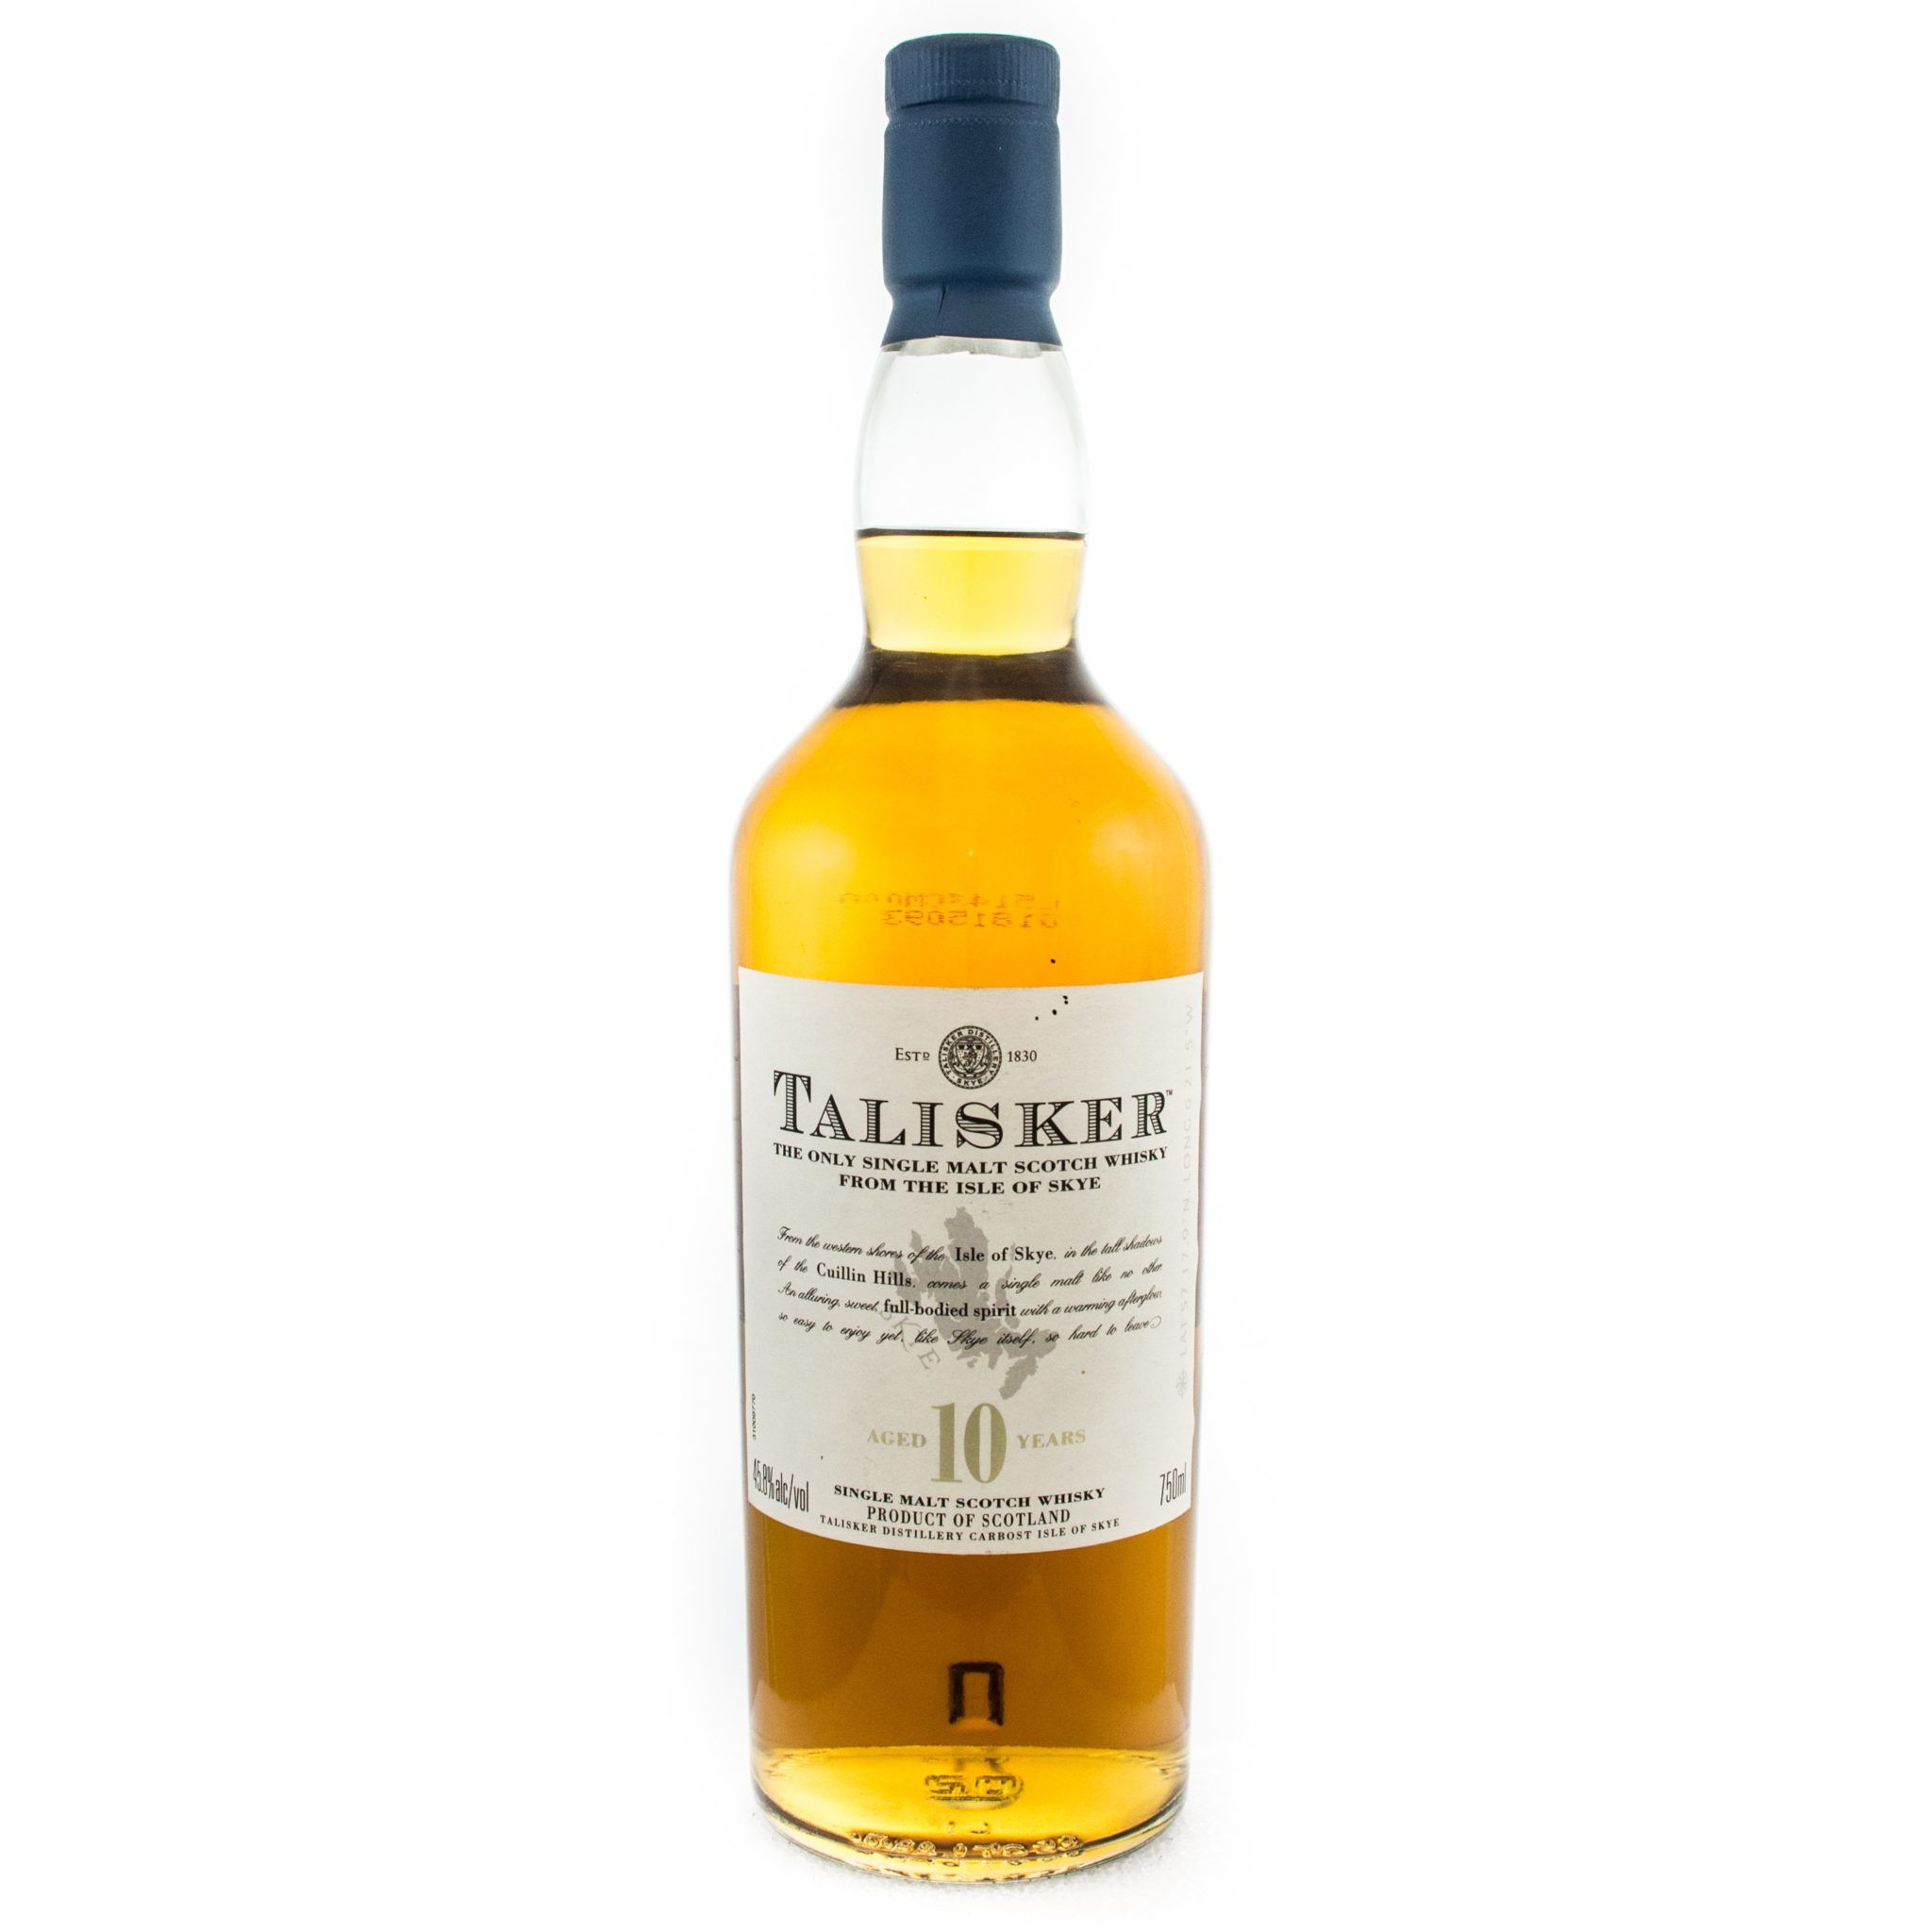 Talisker 10 Years Old 10 Year Old Single Malt 10 Things